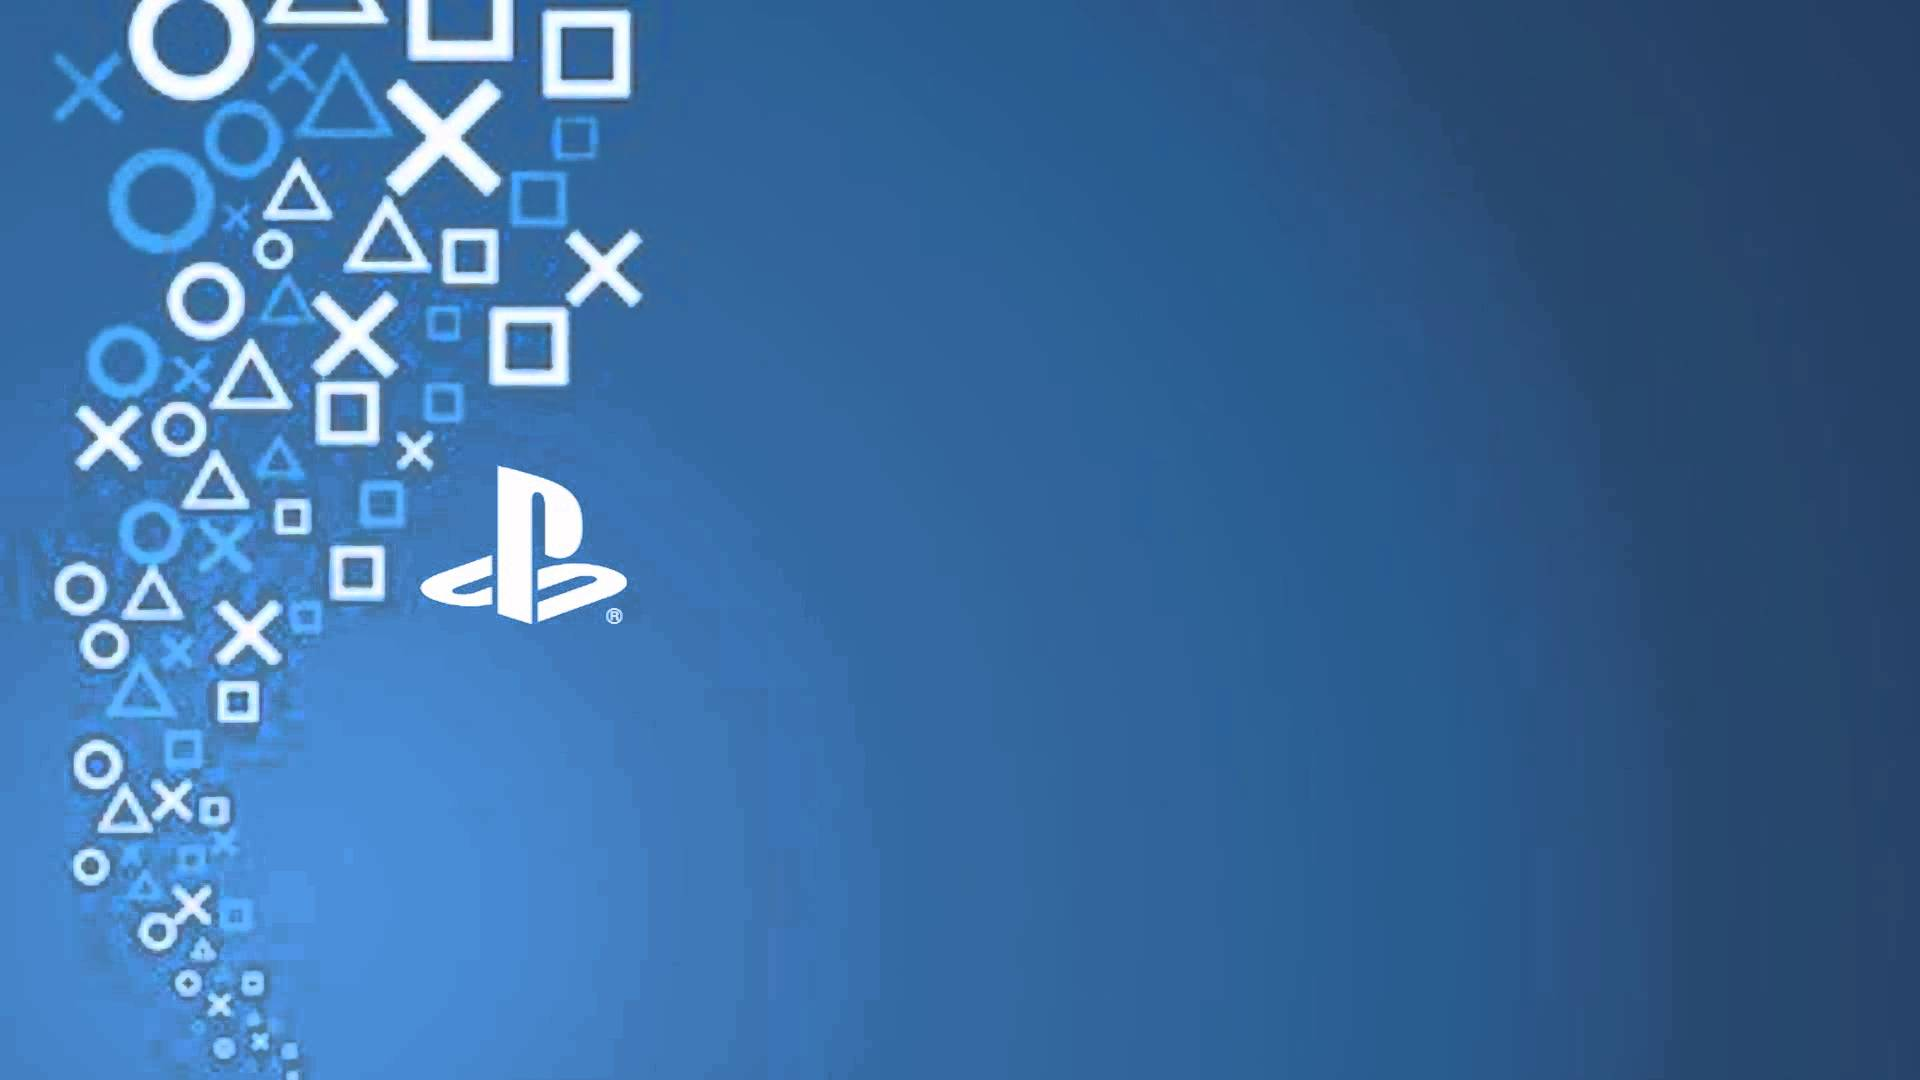 Finally! Sony officially announces that PSN name changes are coming soon, with a bizarre proviso screenshot